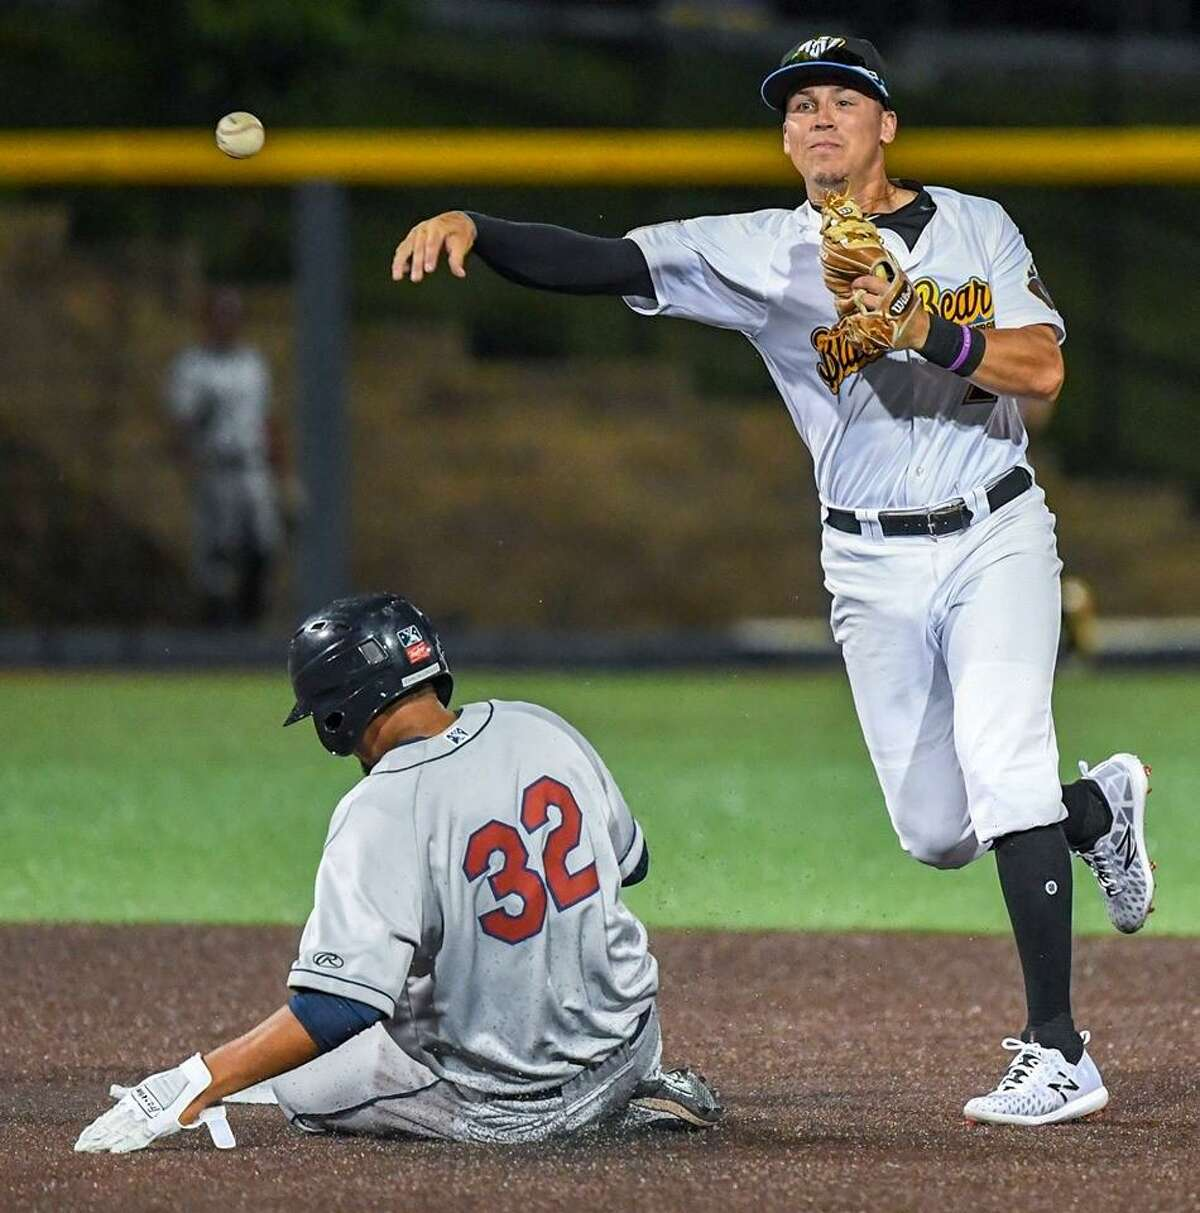 New Haven's Dean Lockery tries to turn a double play in recent game for Class A short-season West Virginia.